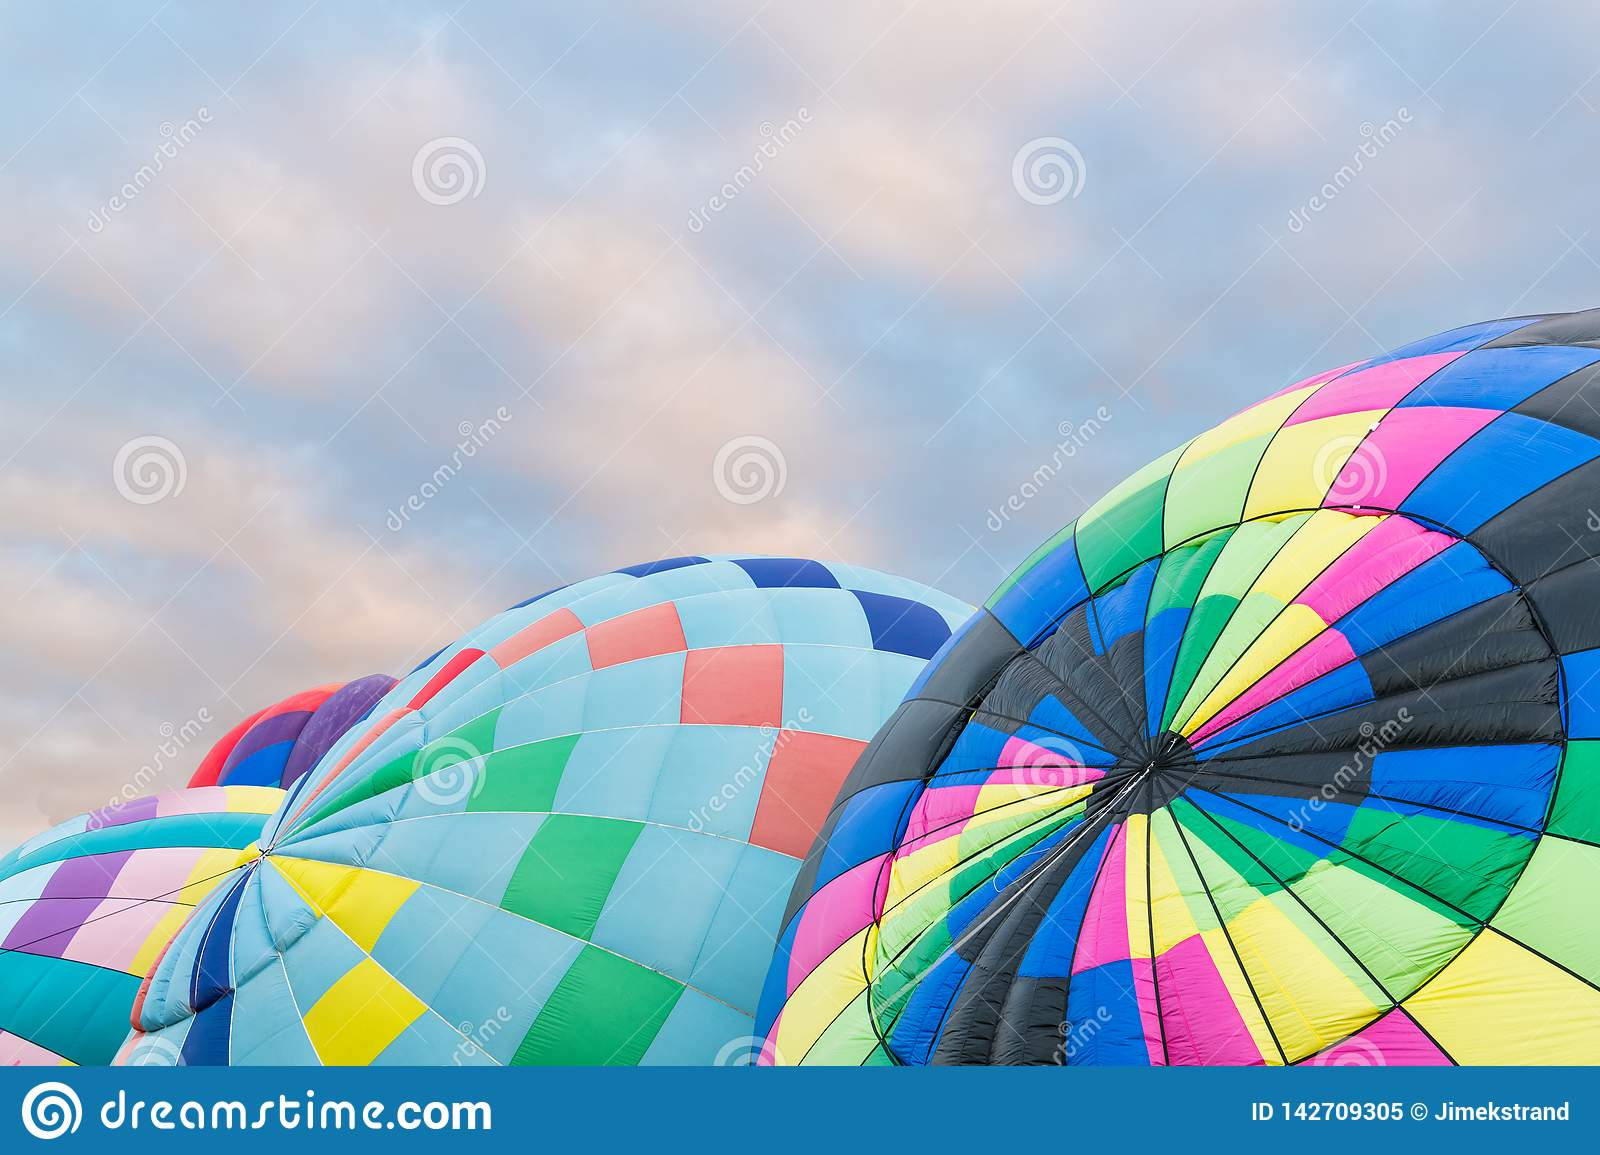 A group of colorful hot air balloons being inflated at the International Ballon Fiesta in Albuquerque, New Mexico